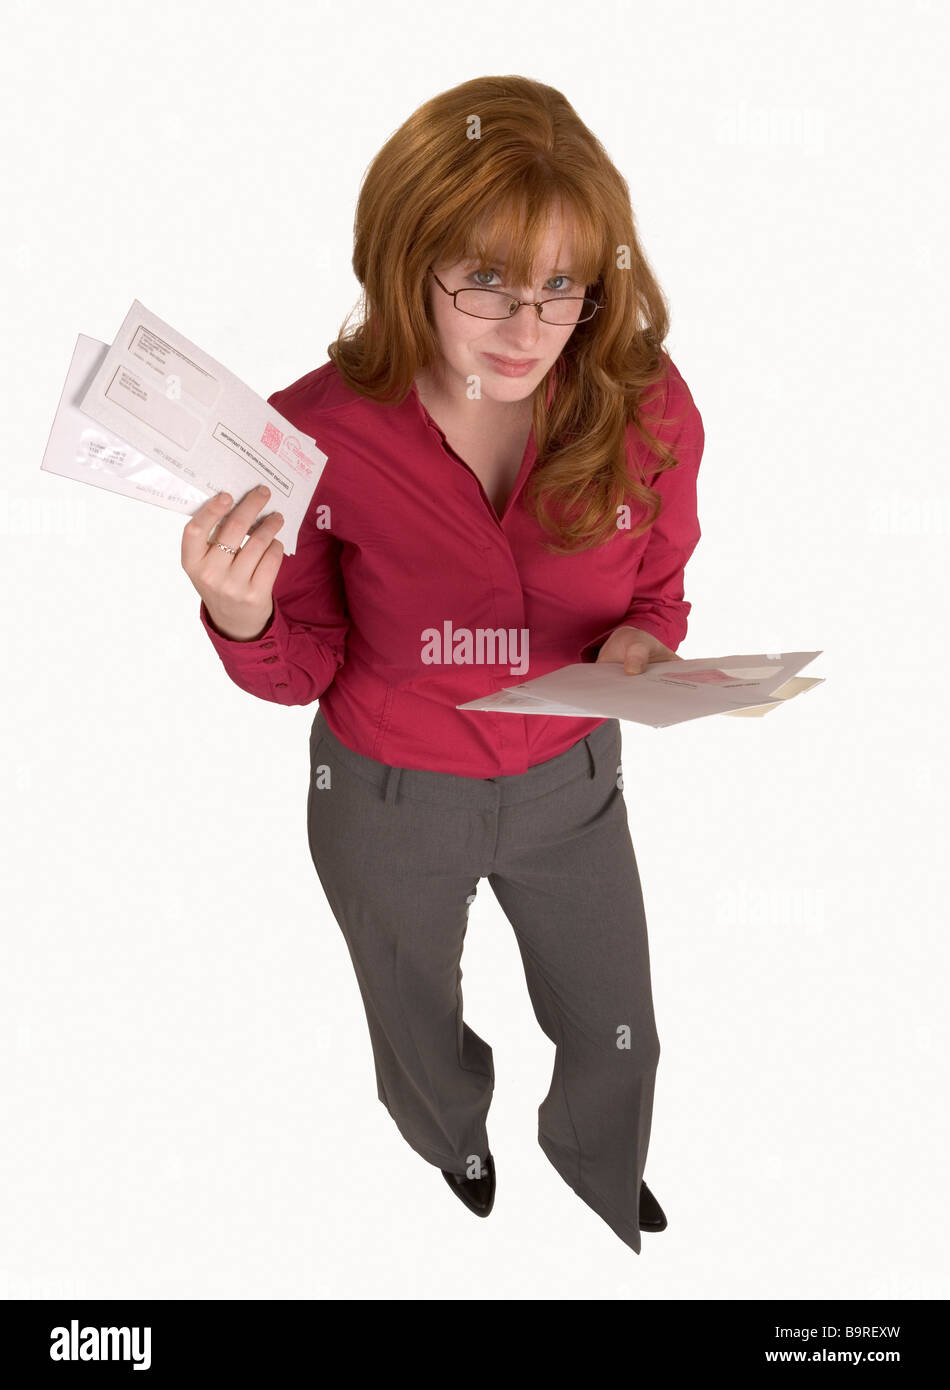 A woman holds many bills that have just arrived in the mail - Stock Image